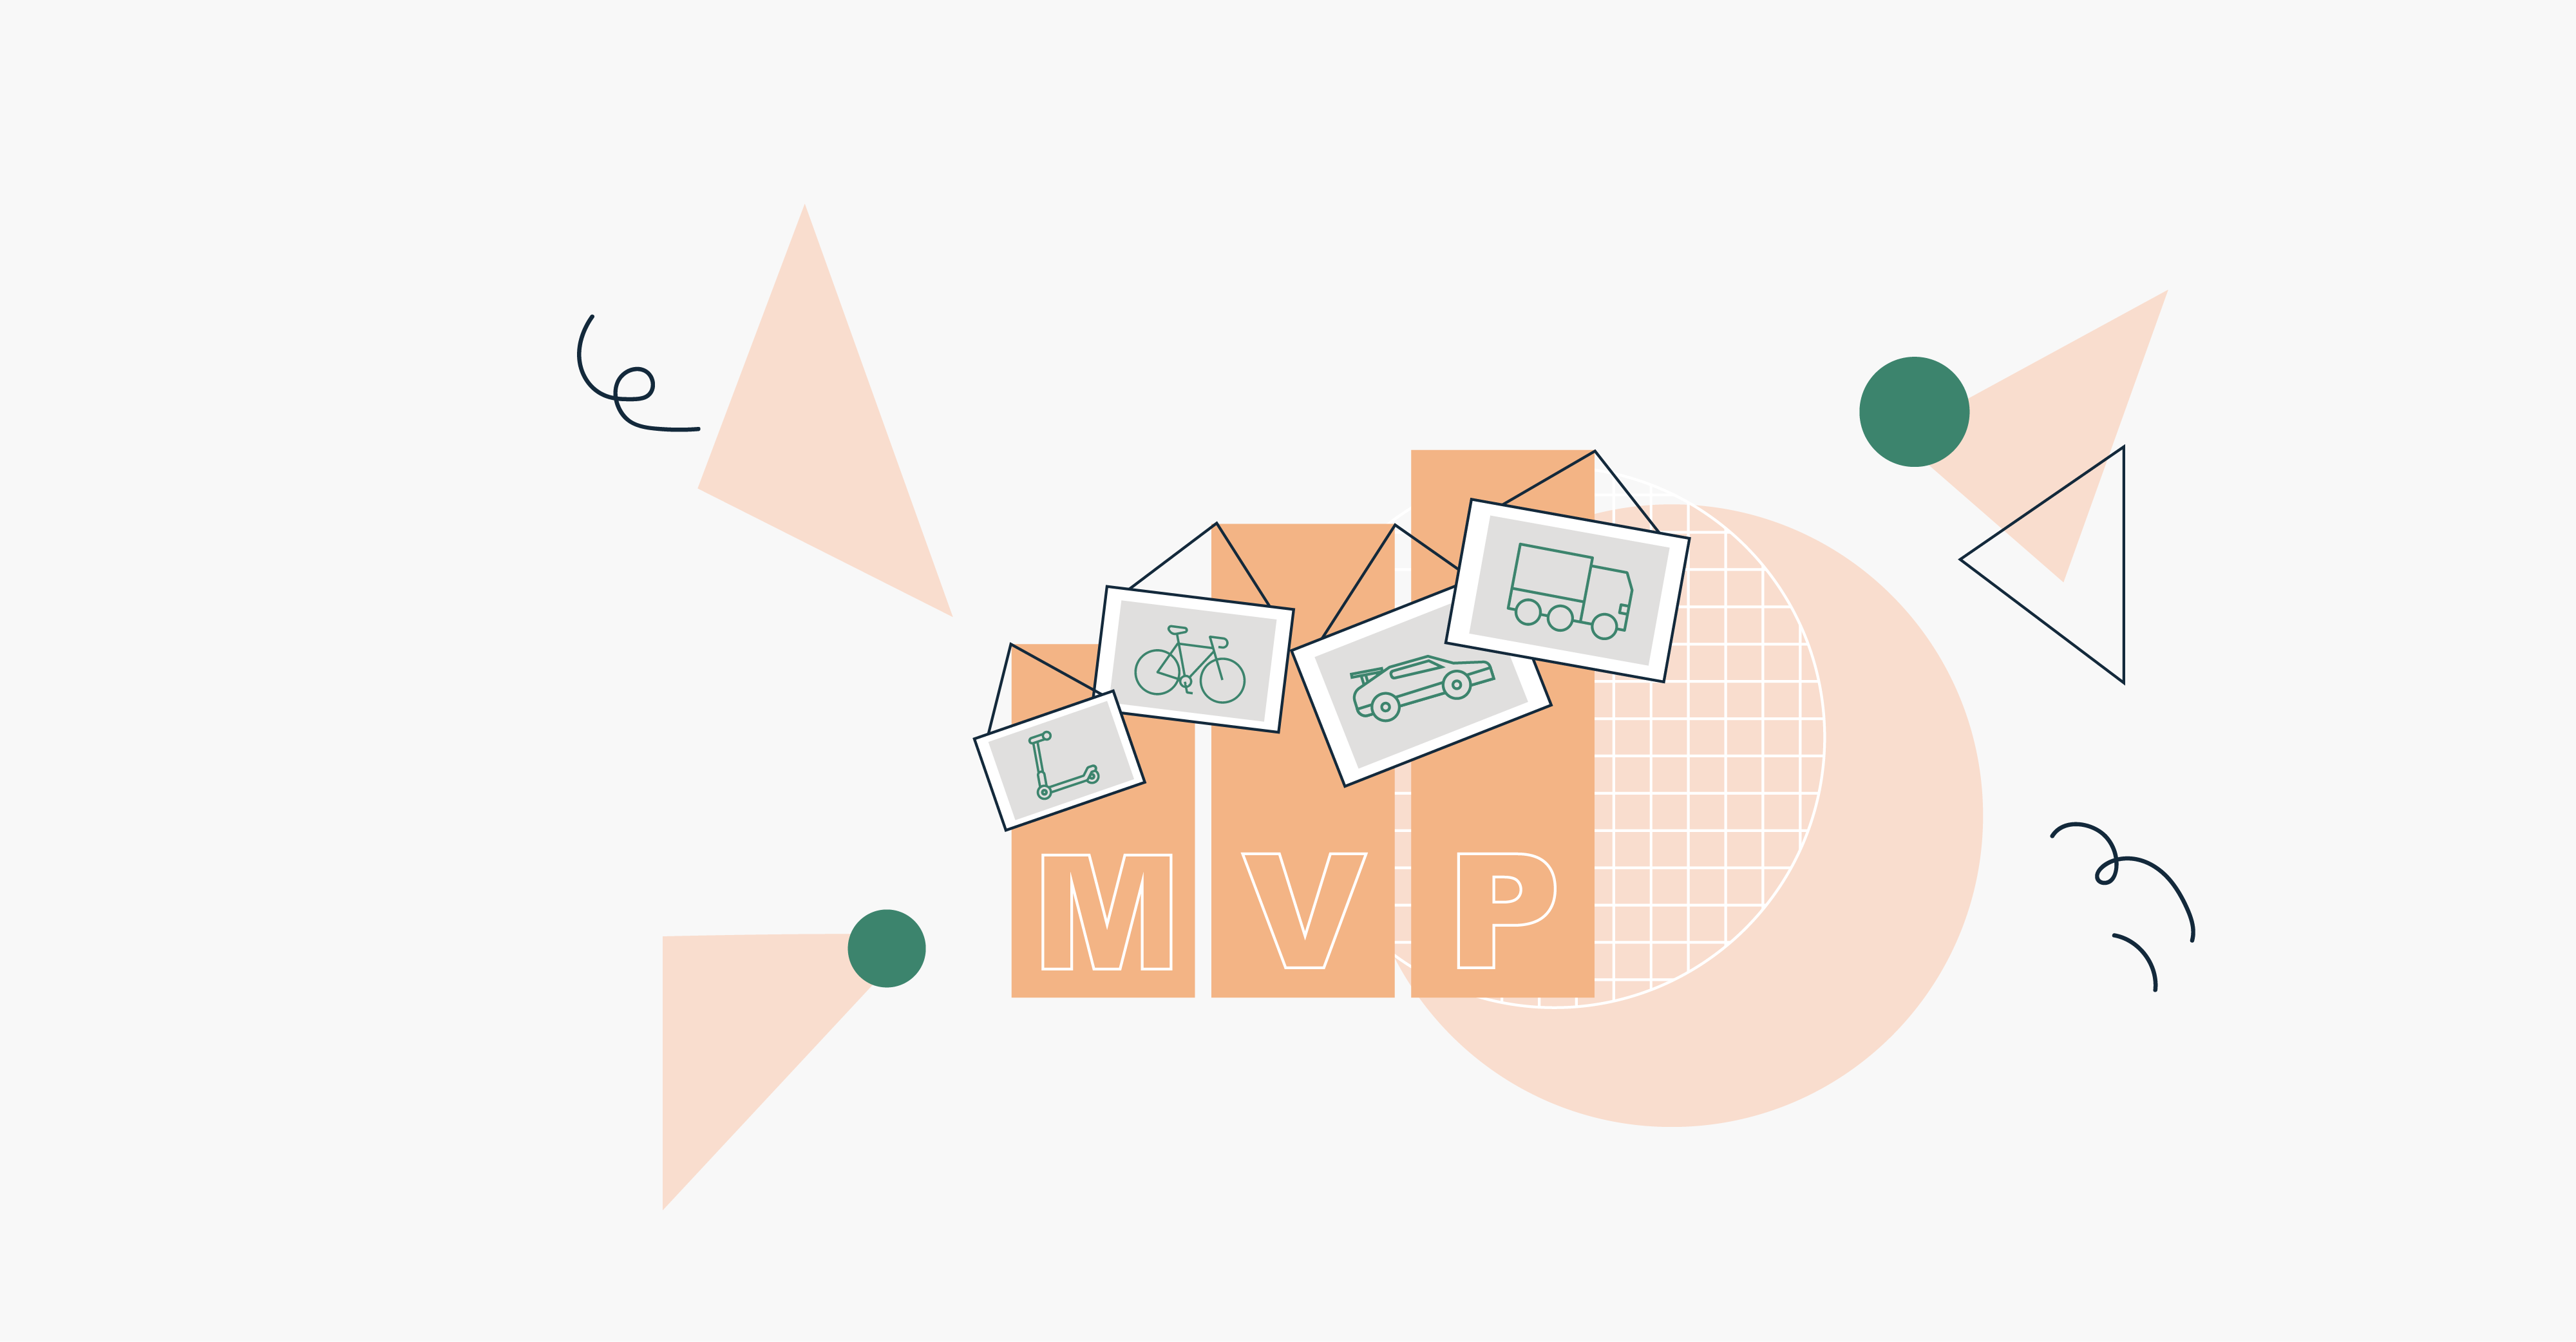 Why Start Business With MVP Is a Good Idea